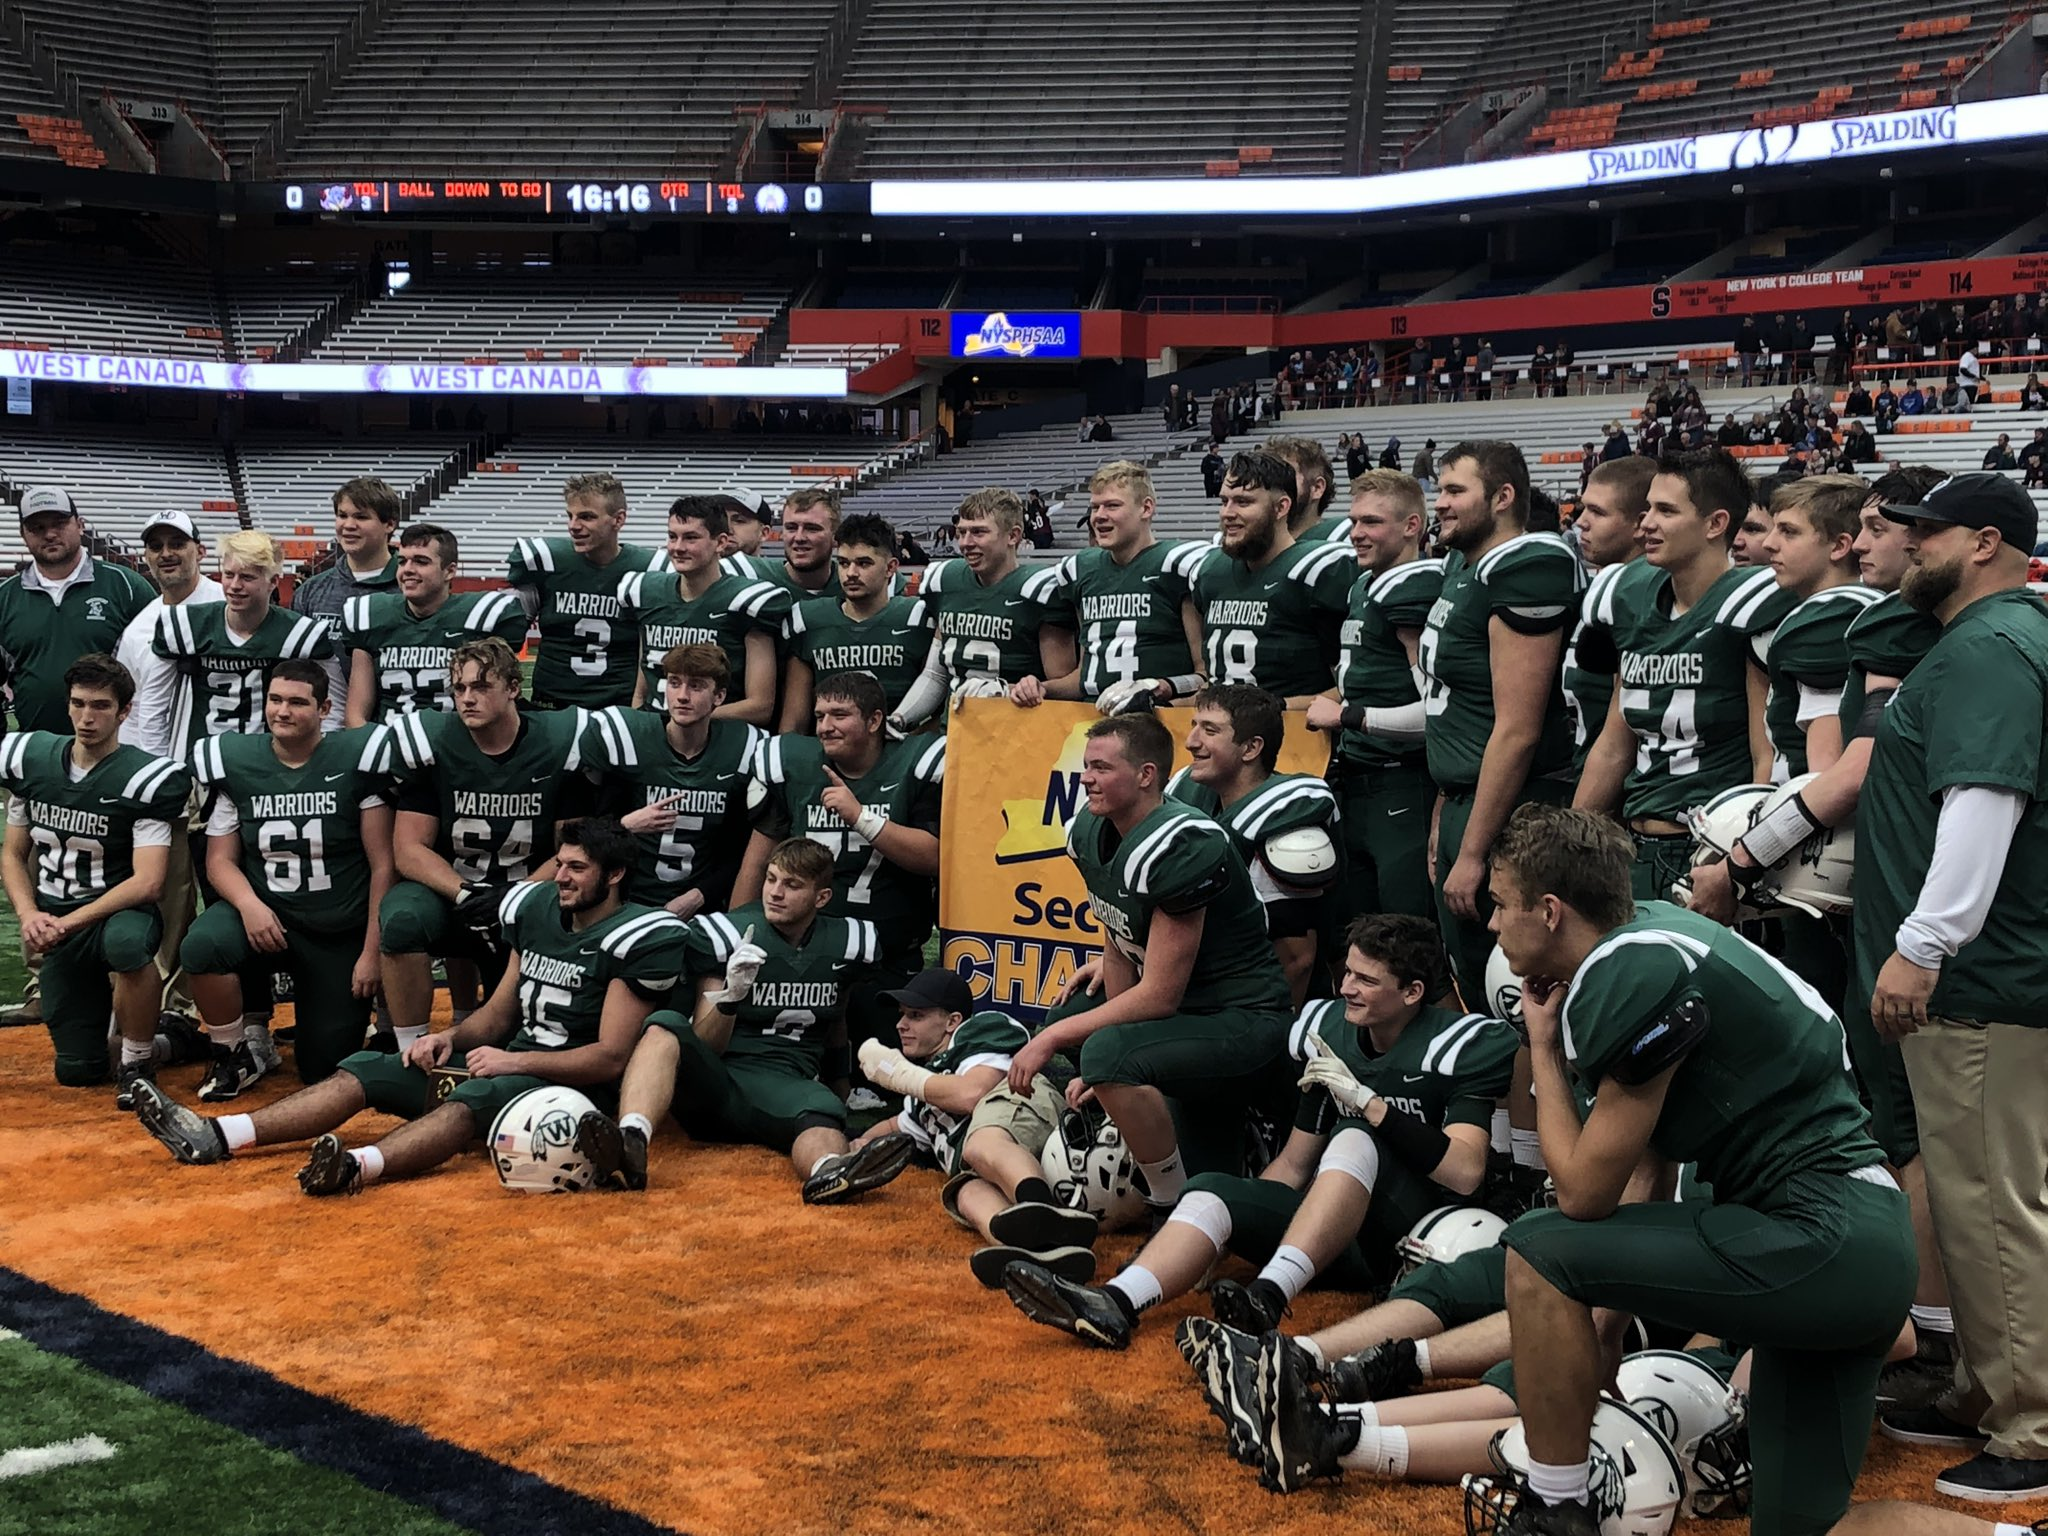 Weedsport wins second consecutive Section III 8-man championship